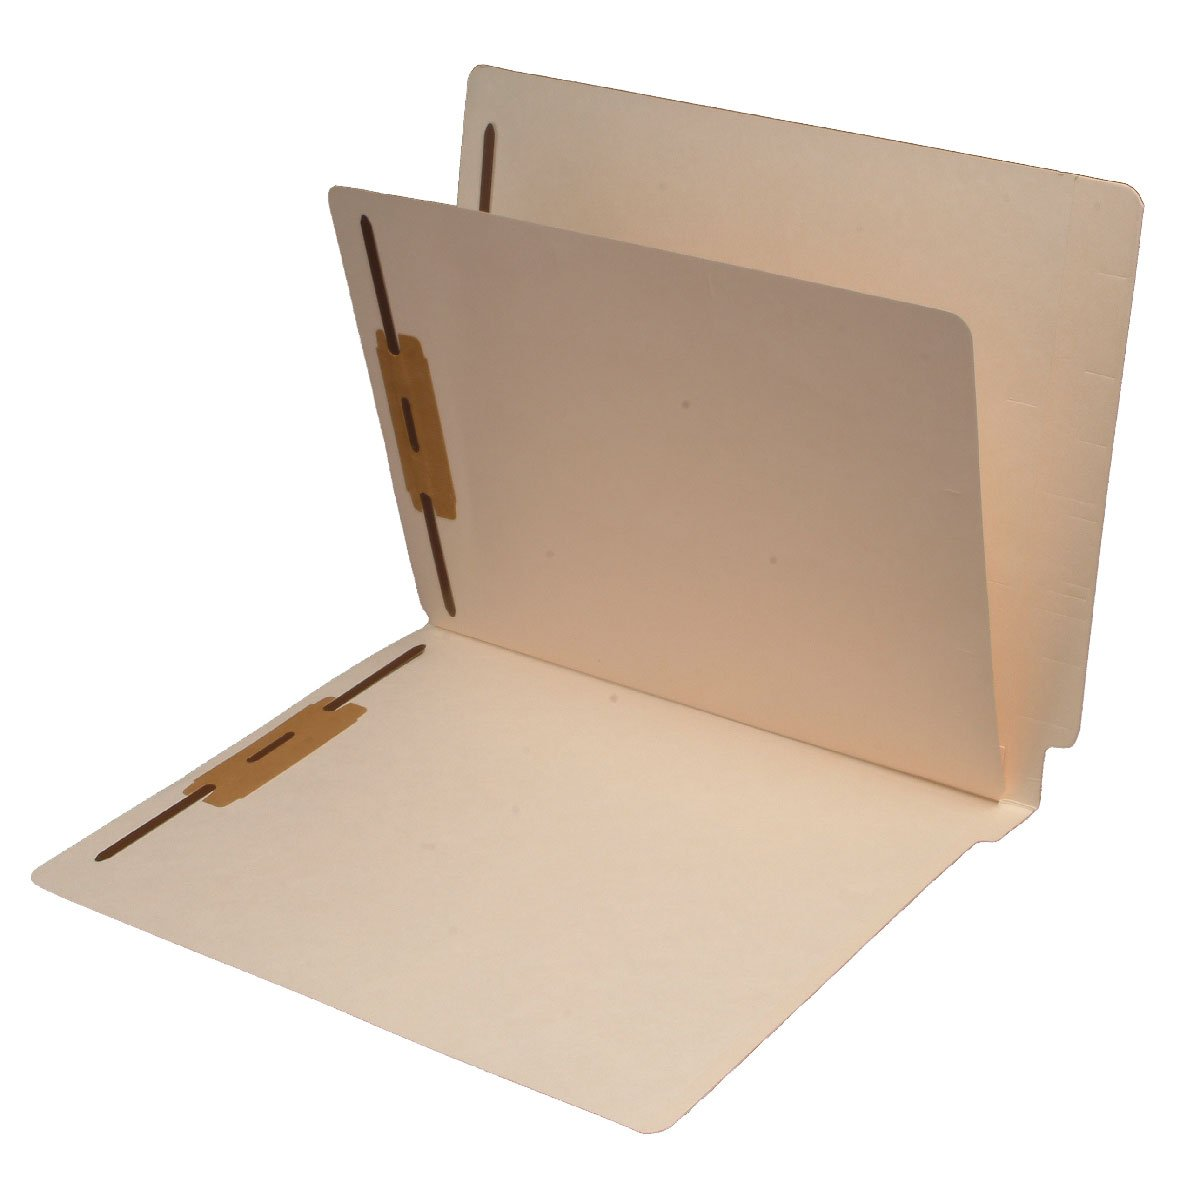 11 Pt. Manila Folders, Full Cut End Tab, Letter Size, 1 Divider Installed (Box of 40) by Ecom Folders